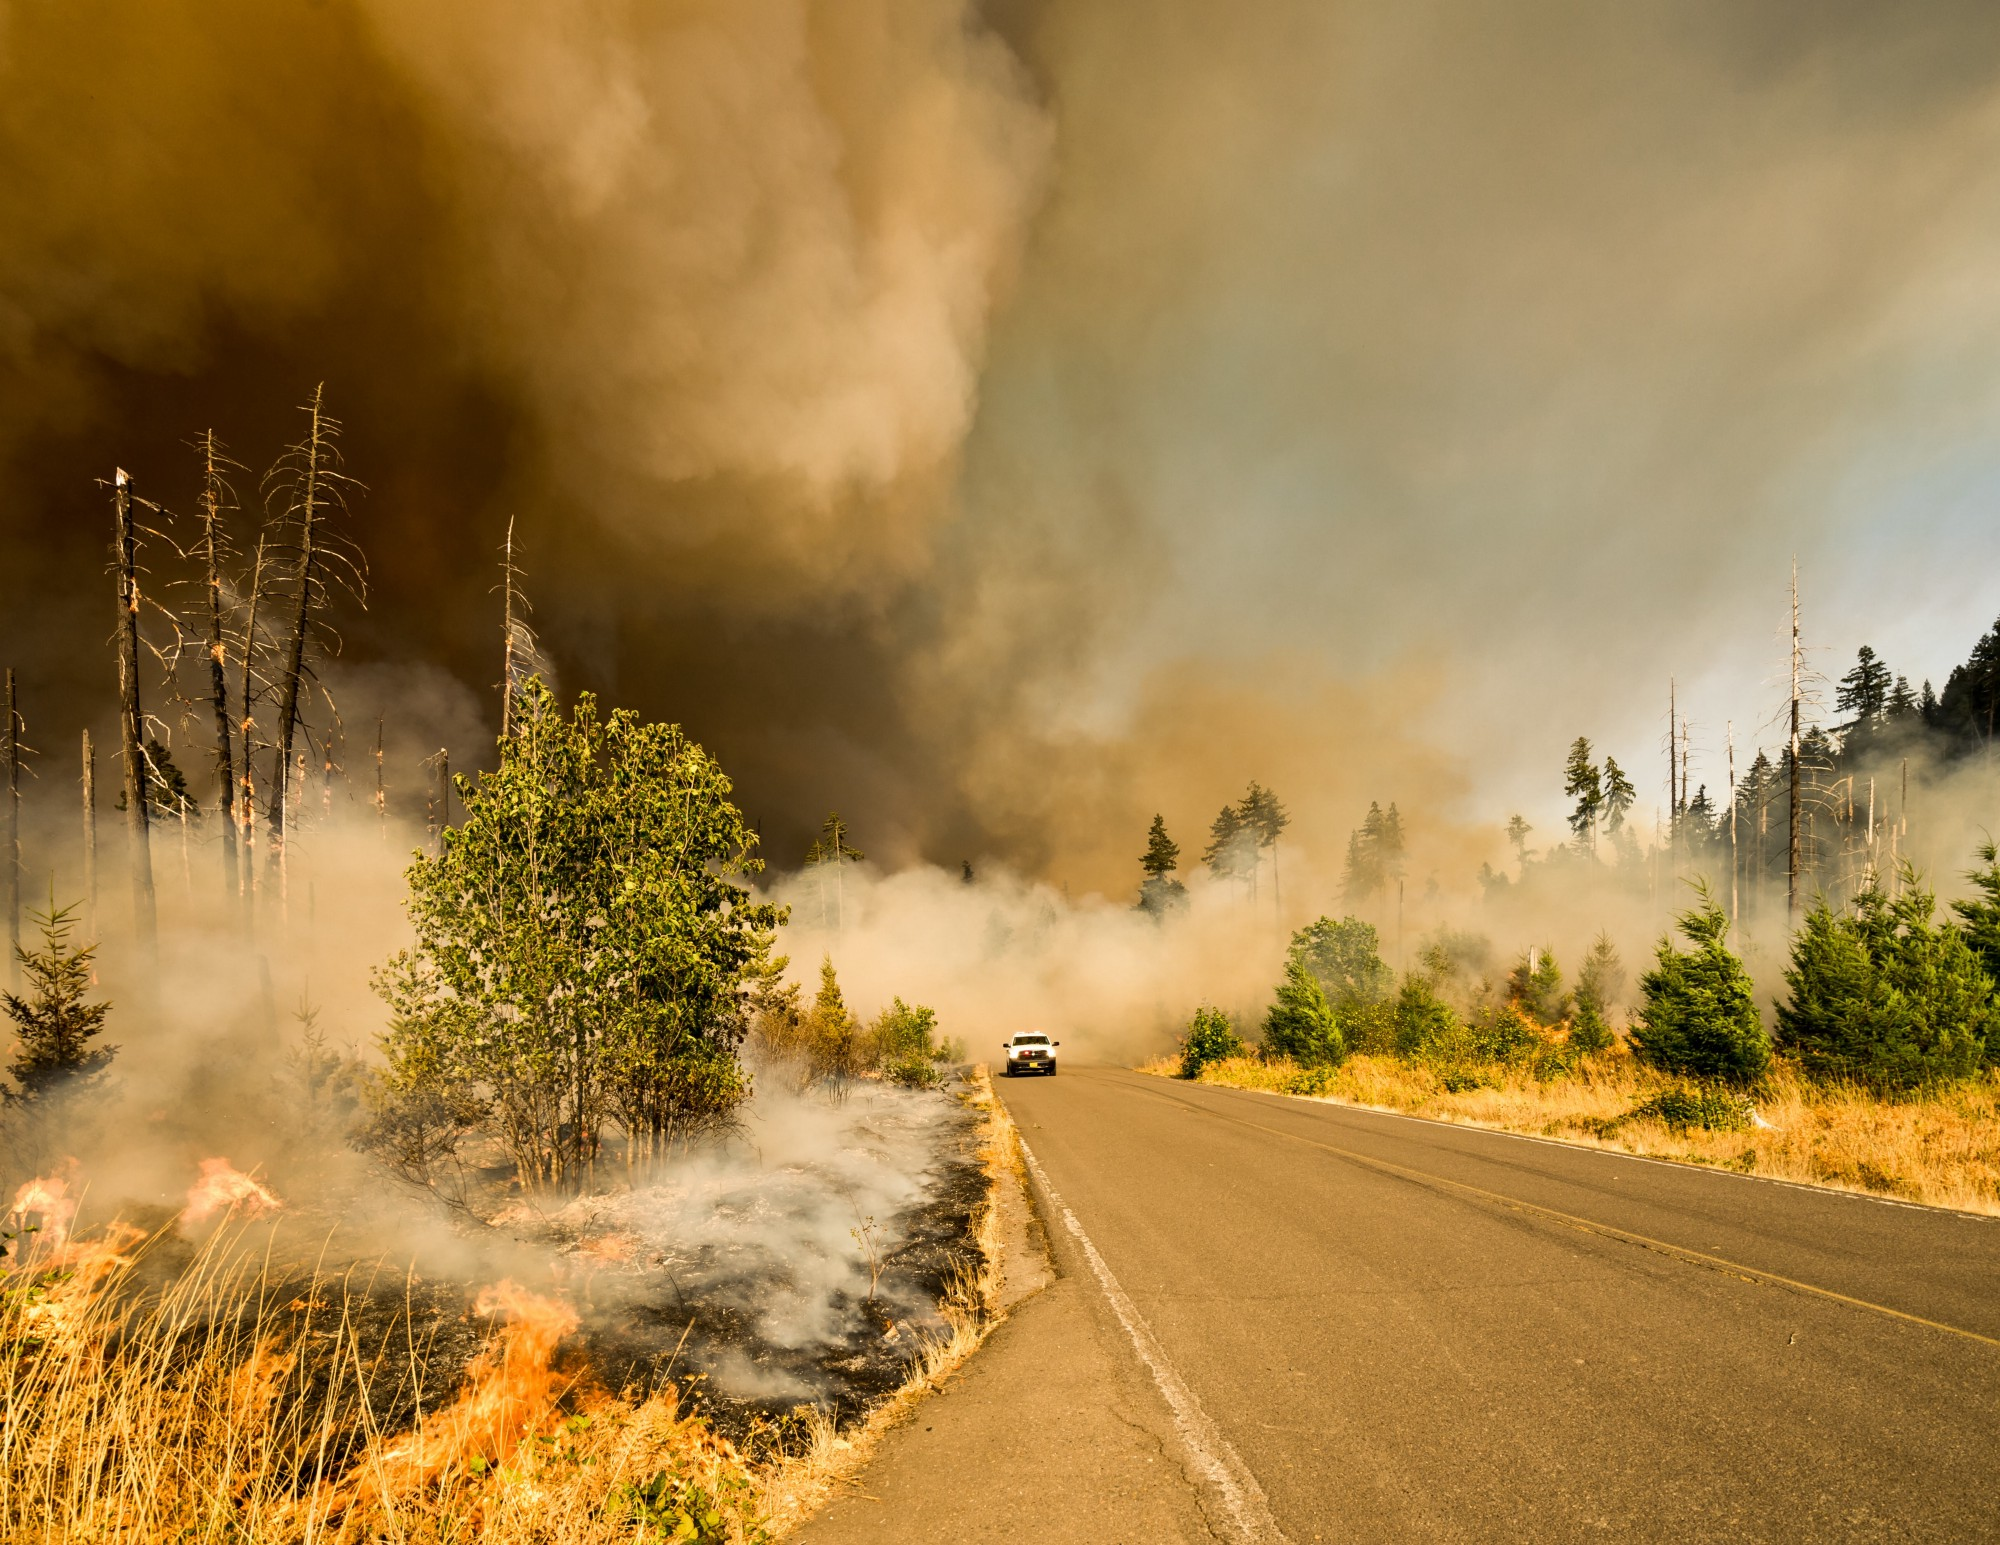 A white car is driving down a road as grey smoke fills the sky while fires burn the forest on the side of the road.